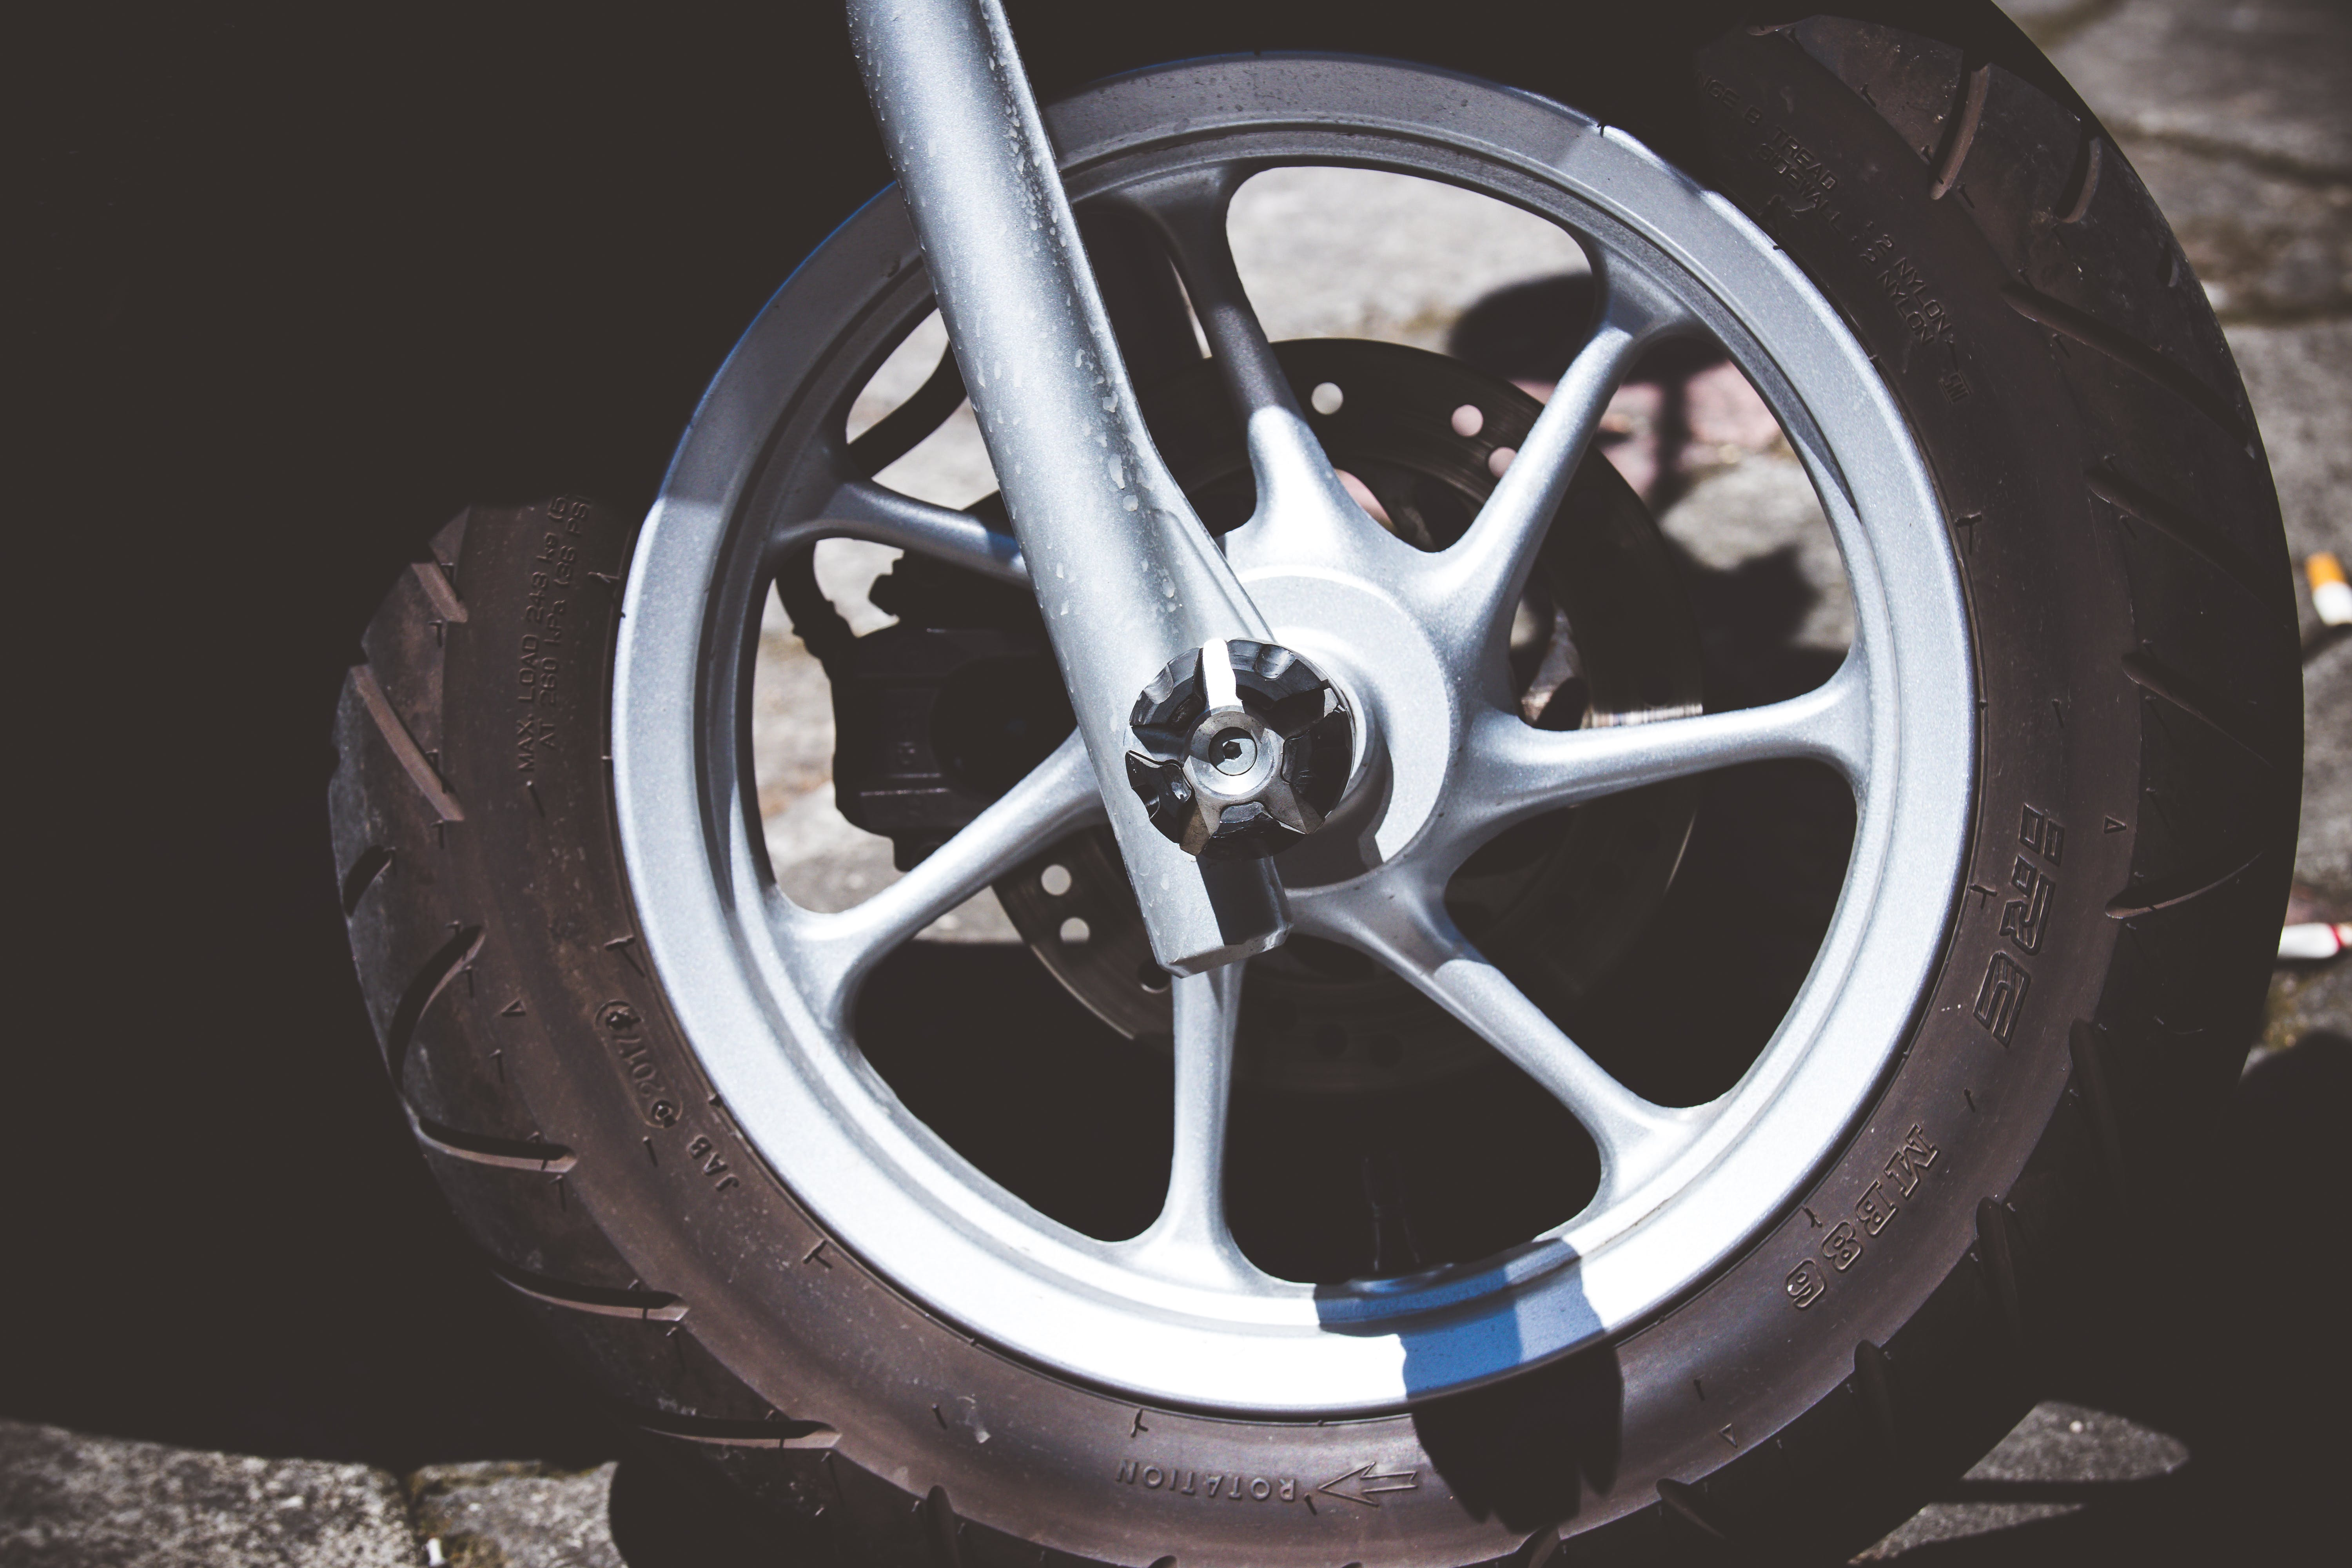 Silver Motorcycle Rim and Tire